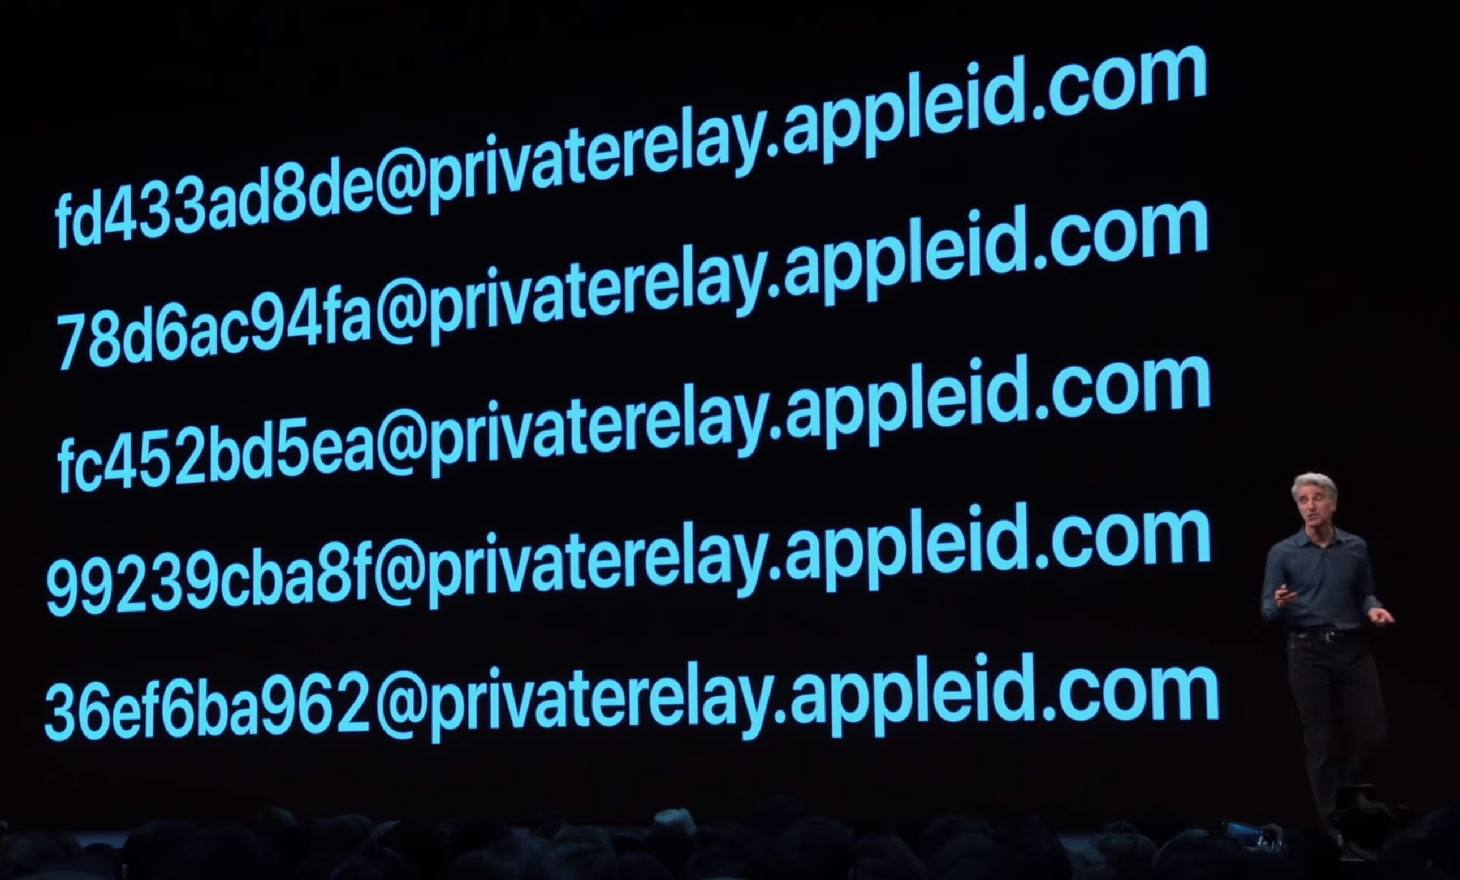 Examples of e-mail addresses randomly generated by Sign In with Apple